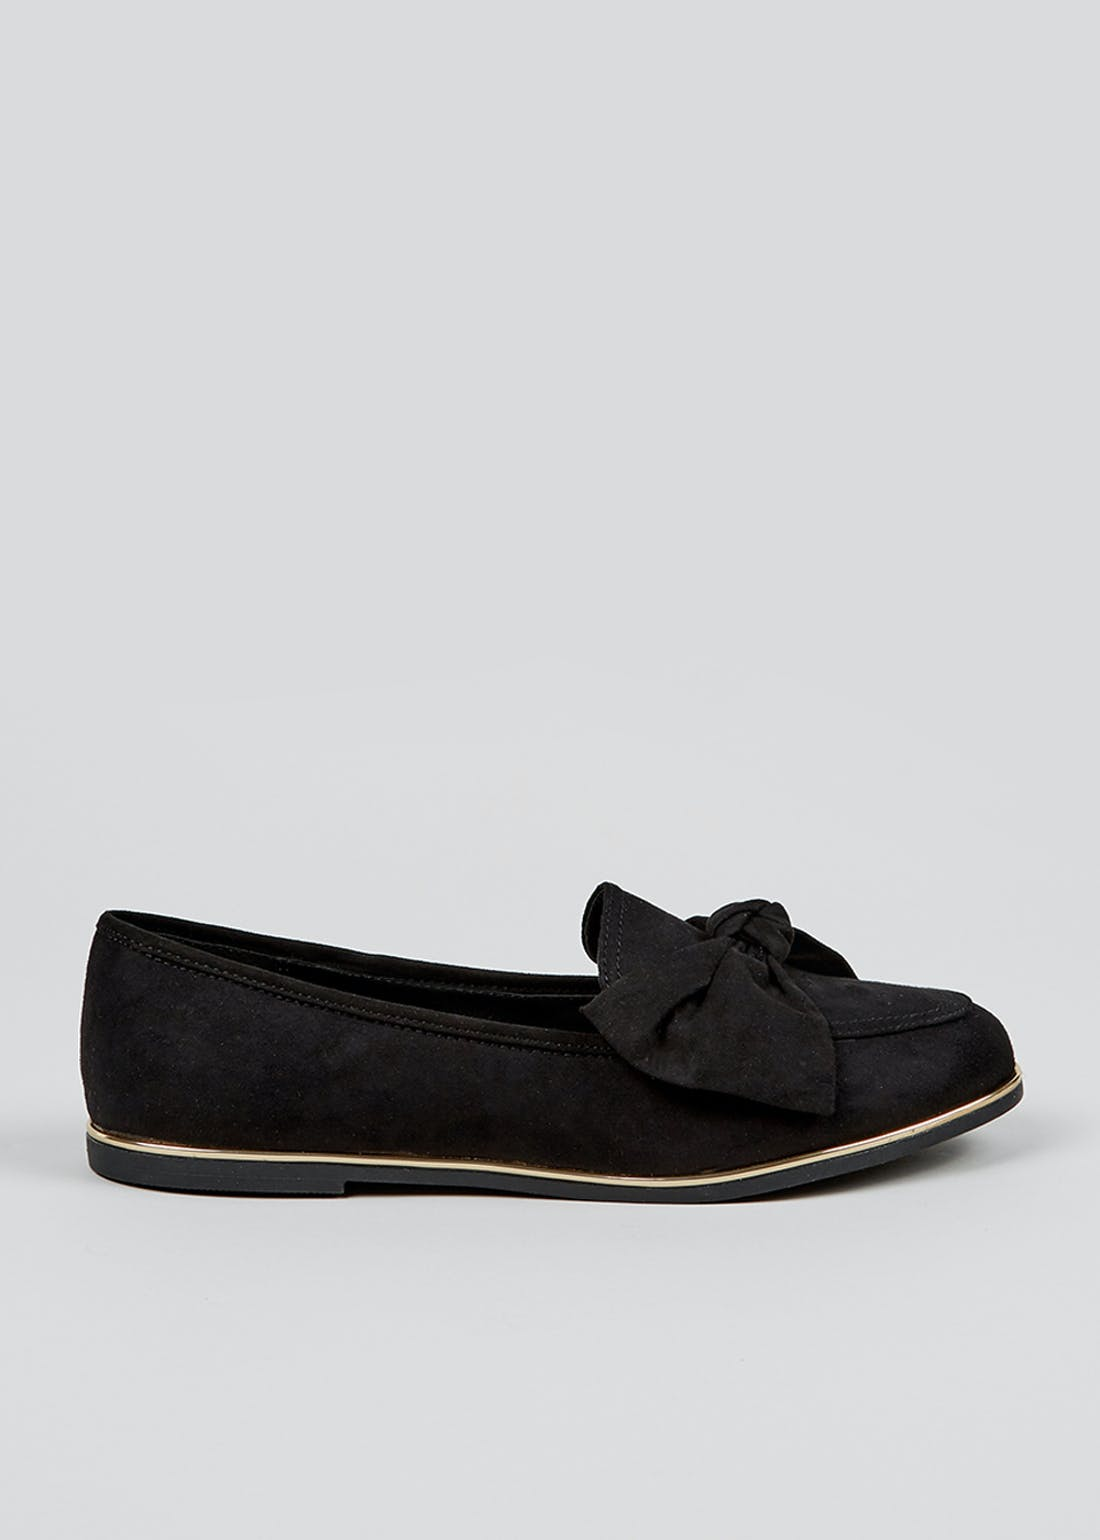 Black Wide Fit Bow Loafers